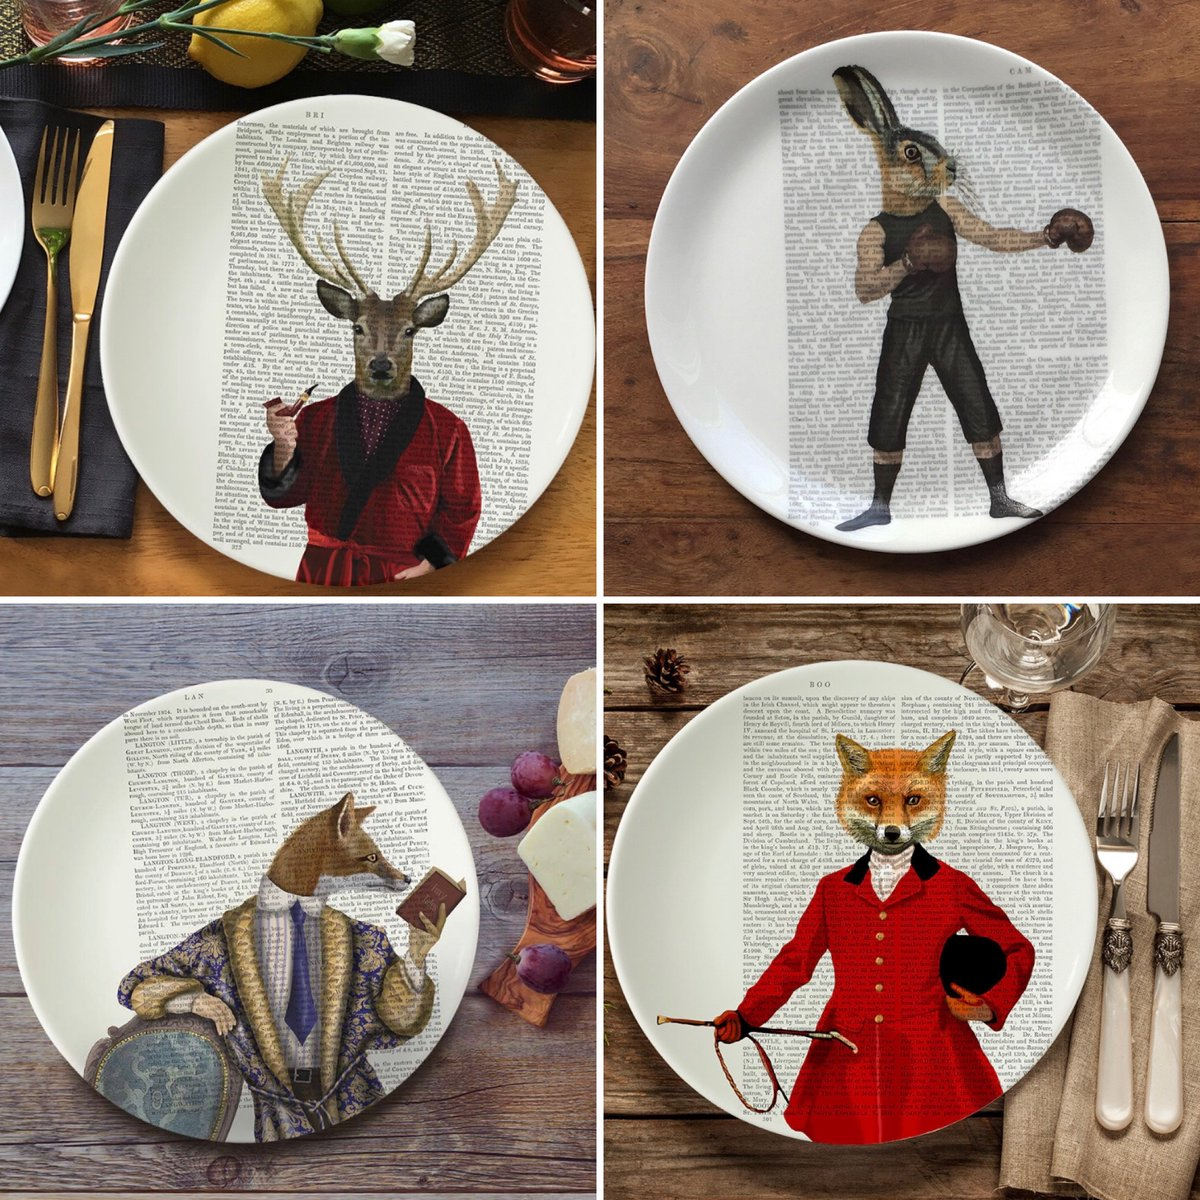 Last chance to own a Fab Funky bone china plate! We only have a few in various sizes left in stock. So hurry before they are all gone. Only available in our #etsyshop https://t.co/pWlMvG44yt #bonechinaplate #decorativeplate #woodlandanimals #fox #hare #deer https://t.co/Mx6wRg9zzU